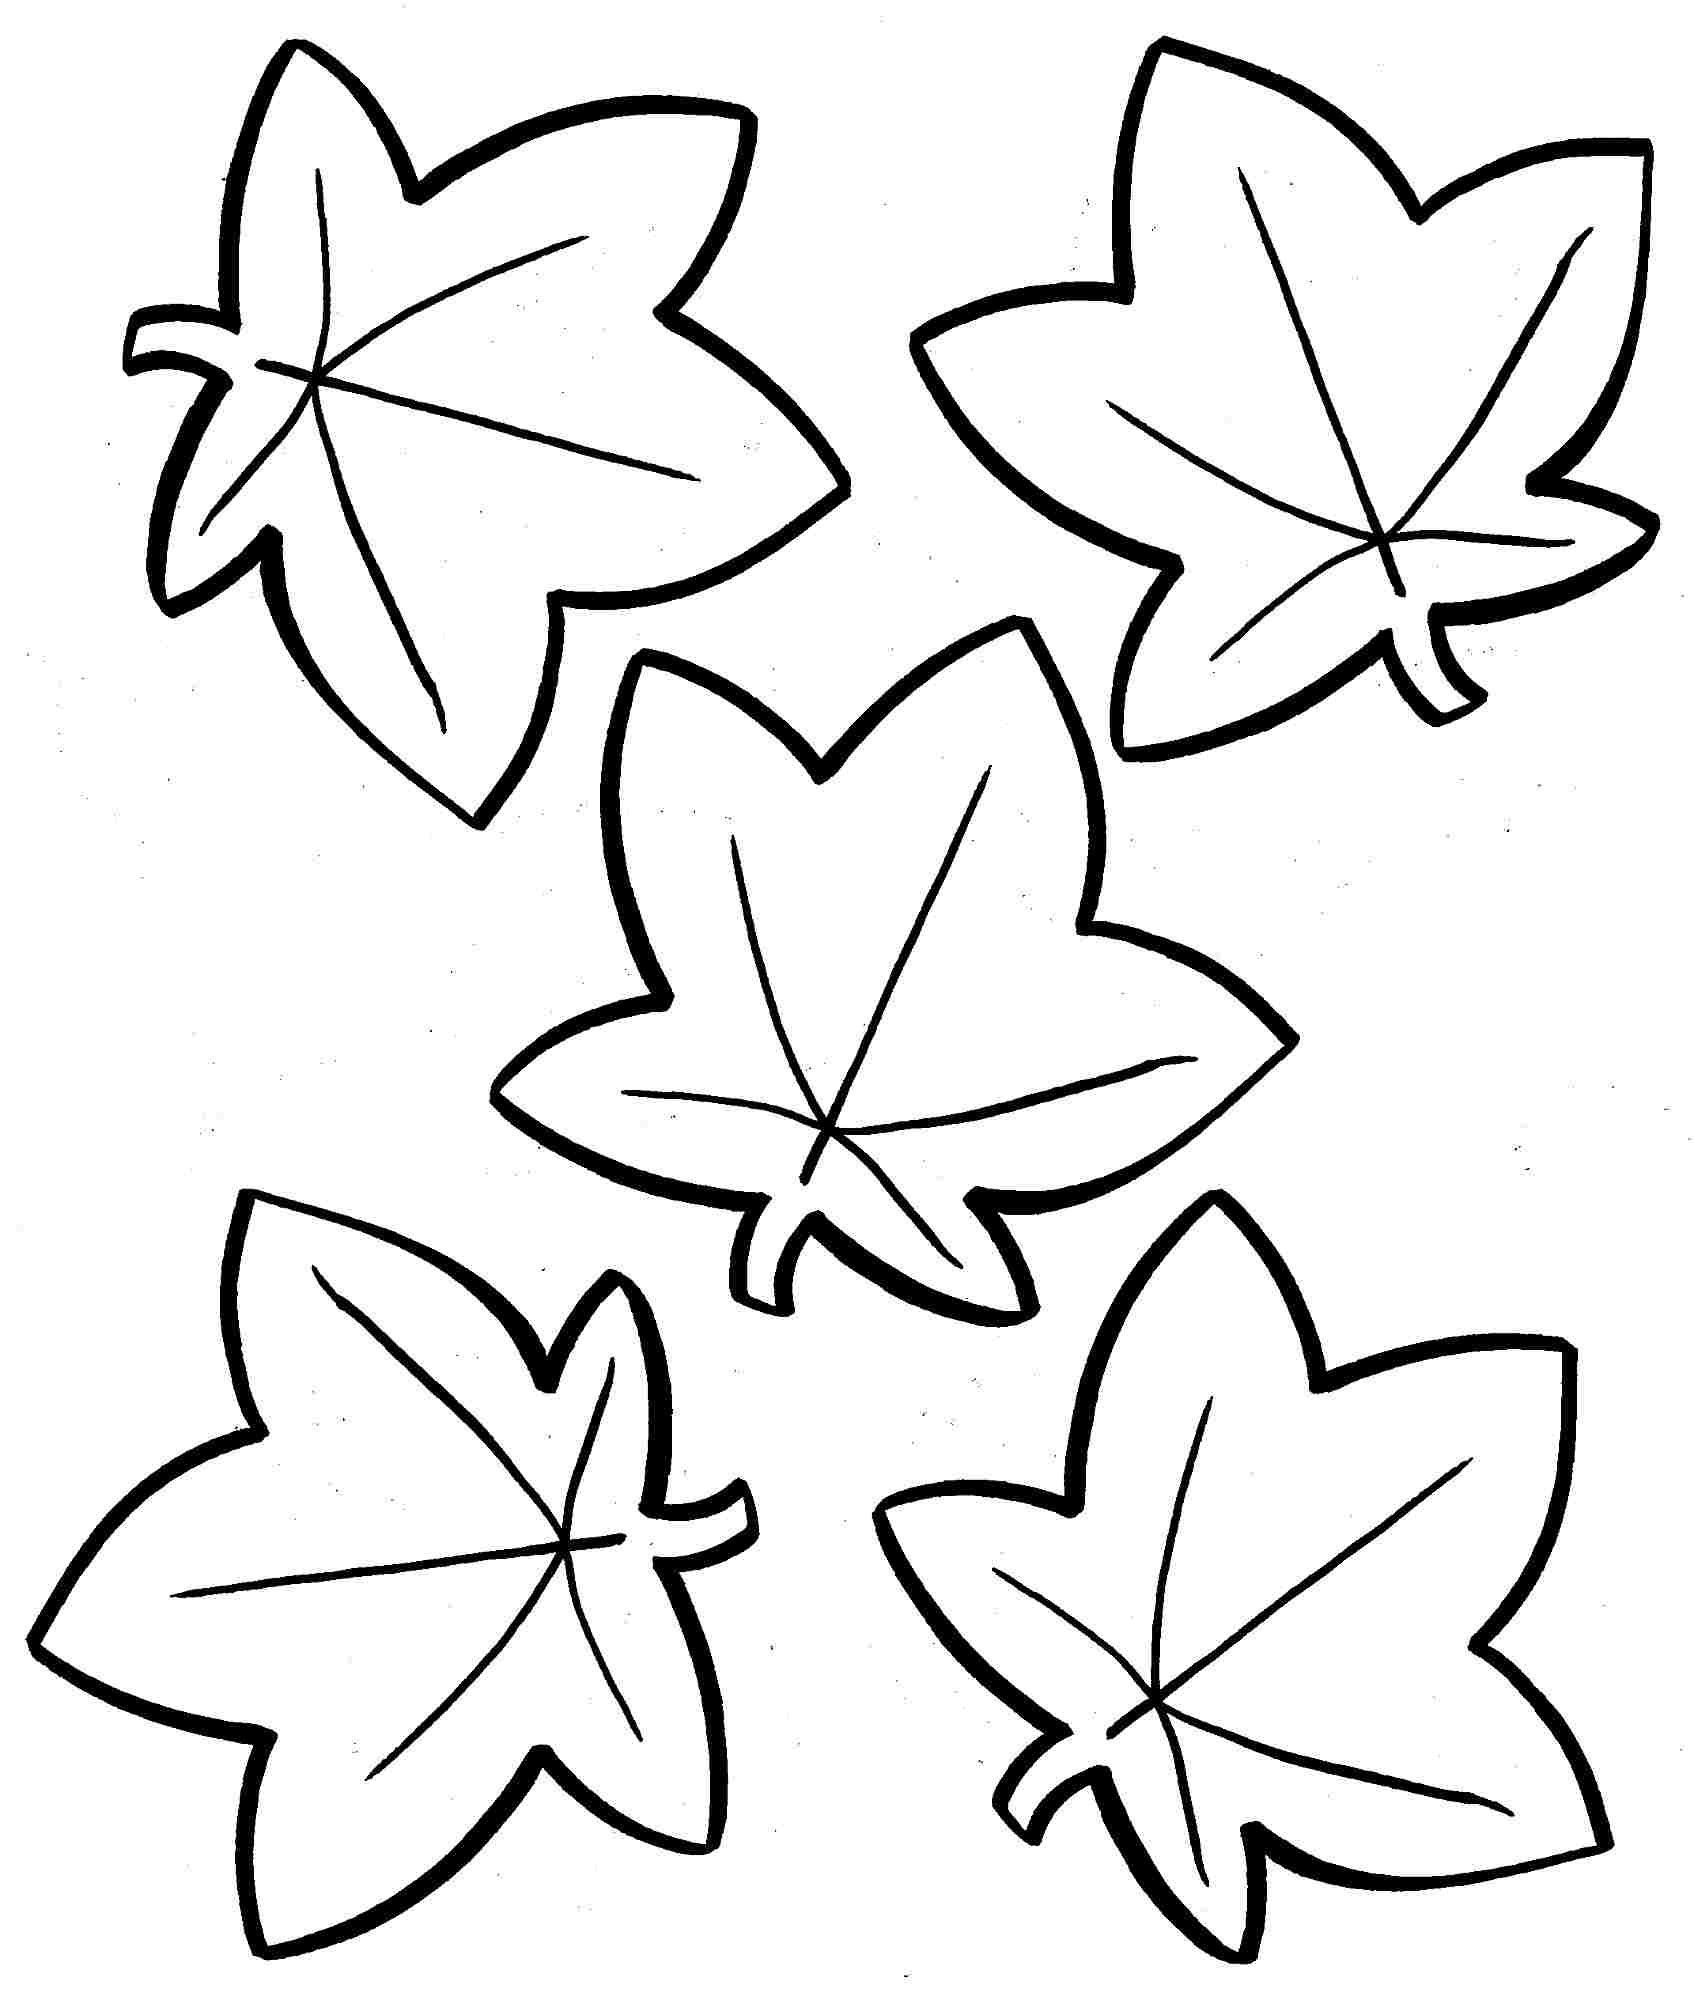 Coloring: Autumn Leaves Coloring Pages. - Free Printable Fall Leaves Coloring Pages